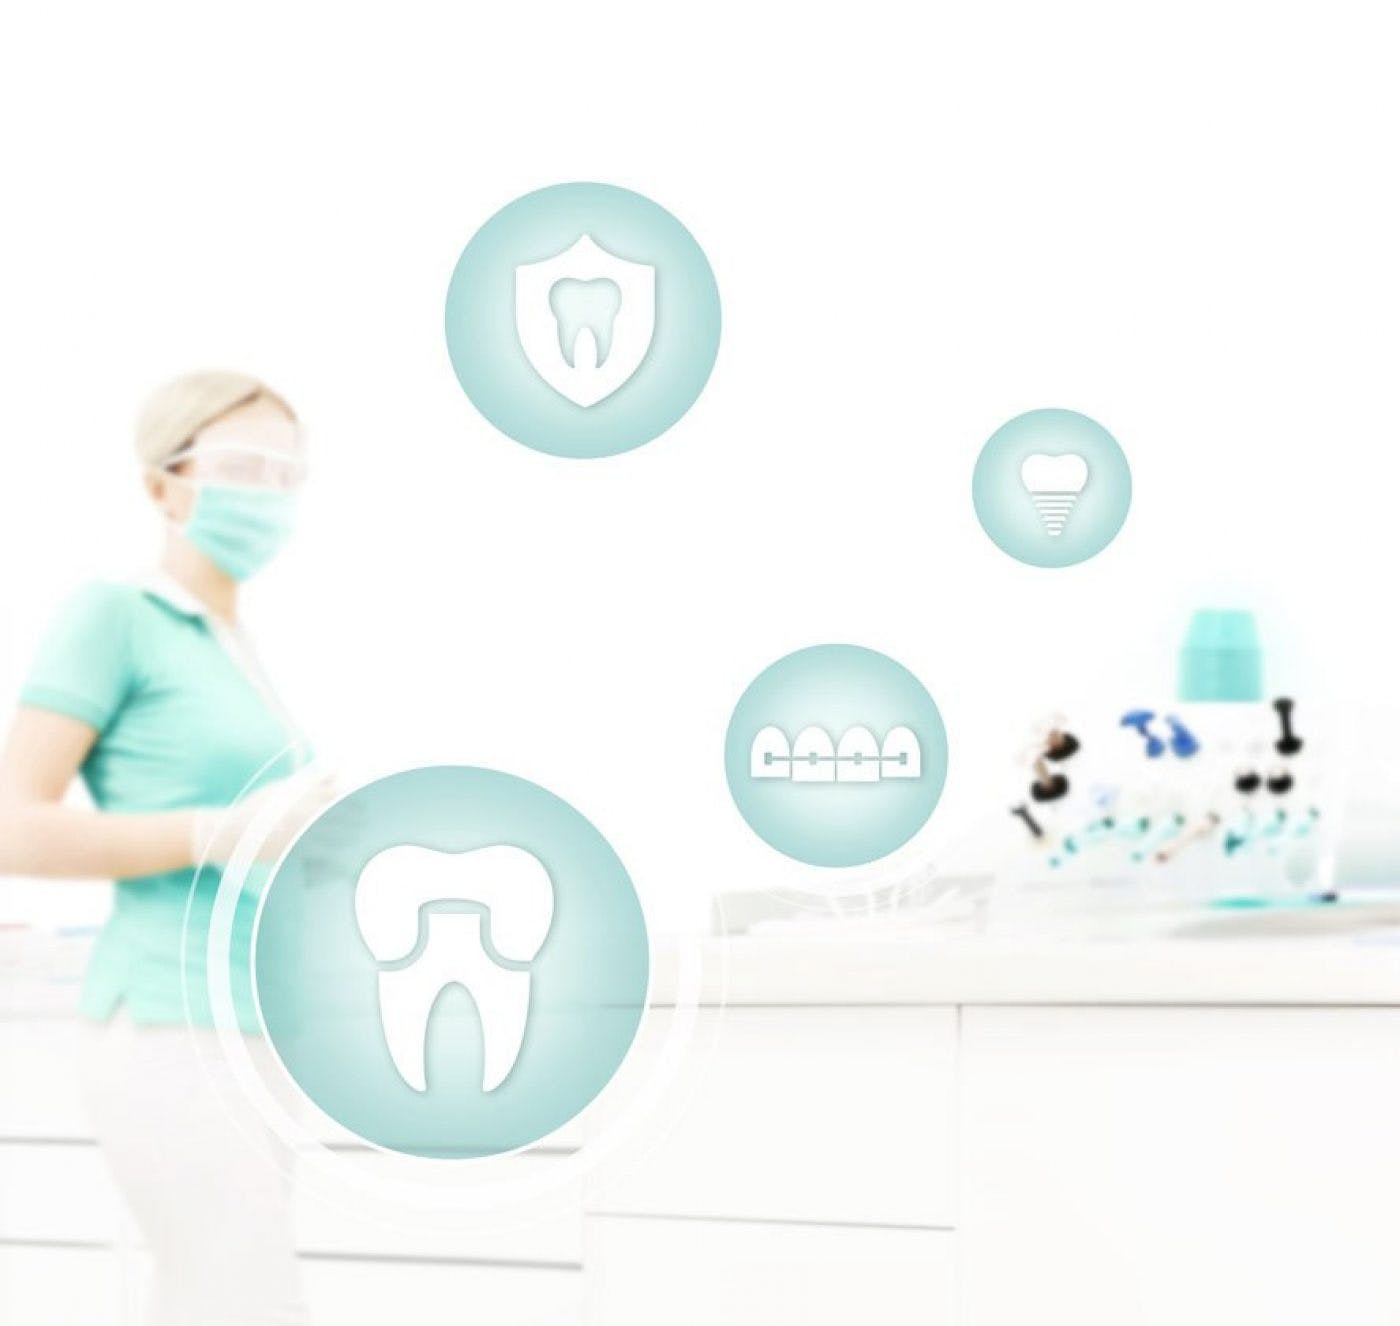 Ilchester Advicecare Commondentalconditions